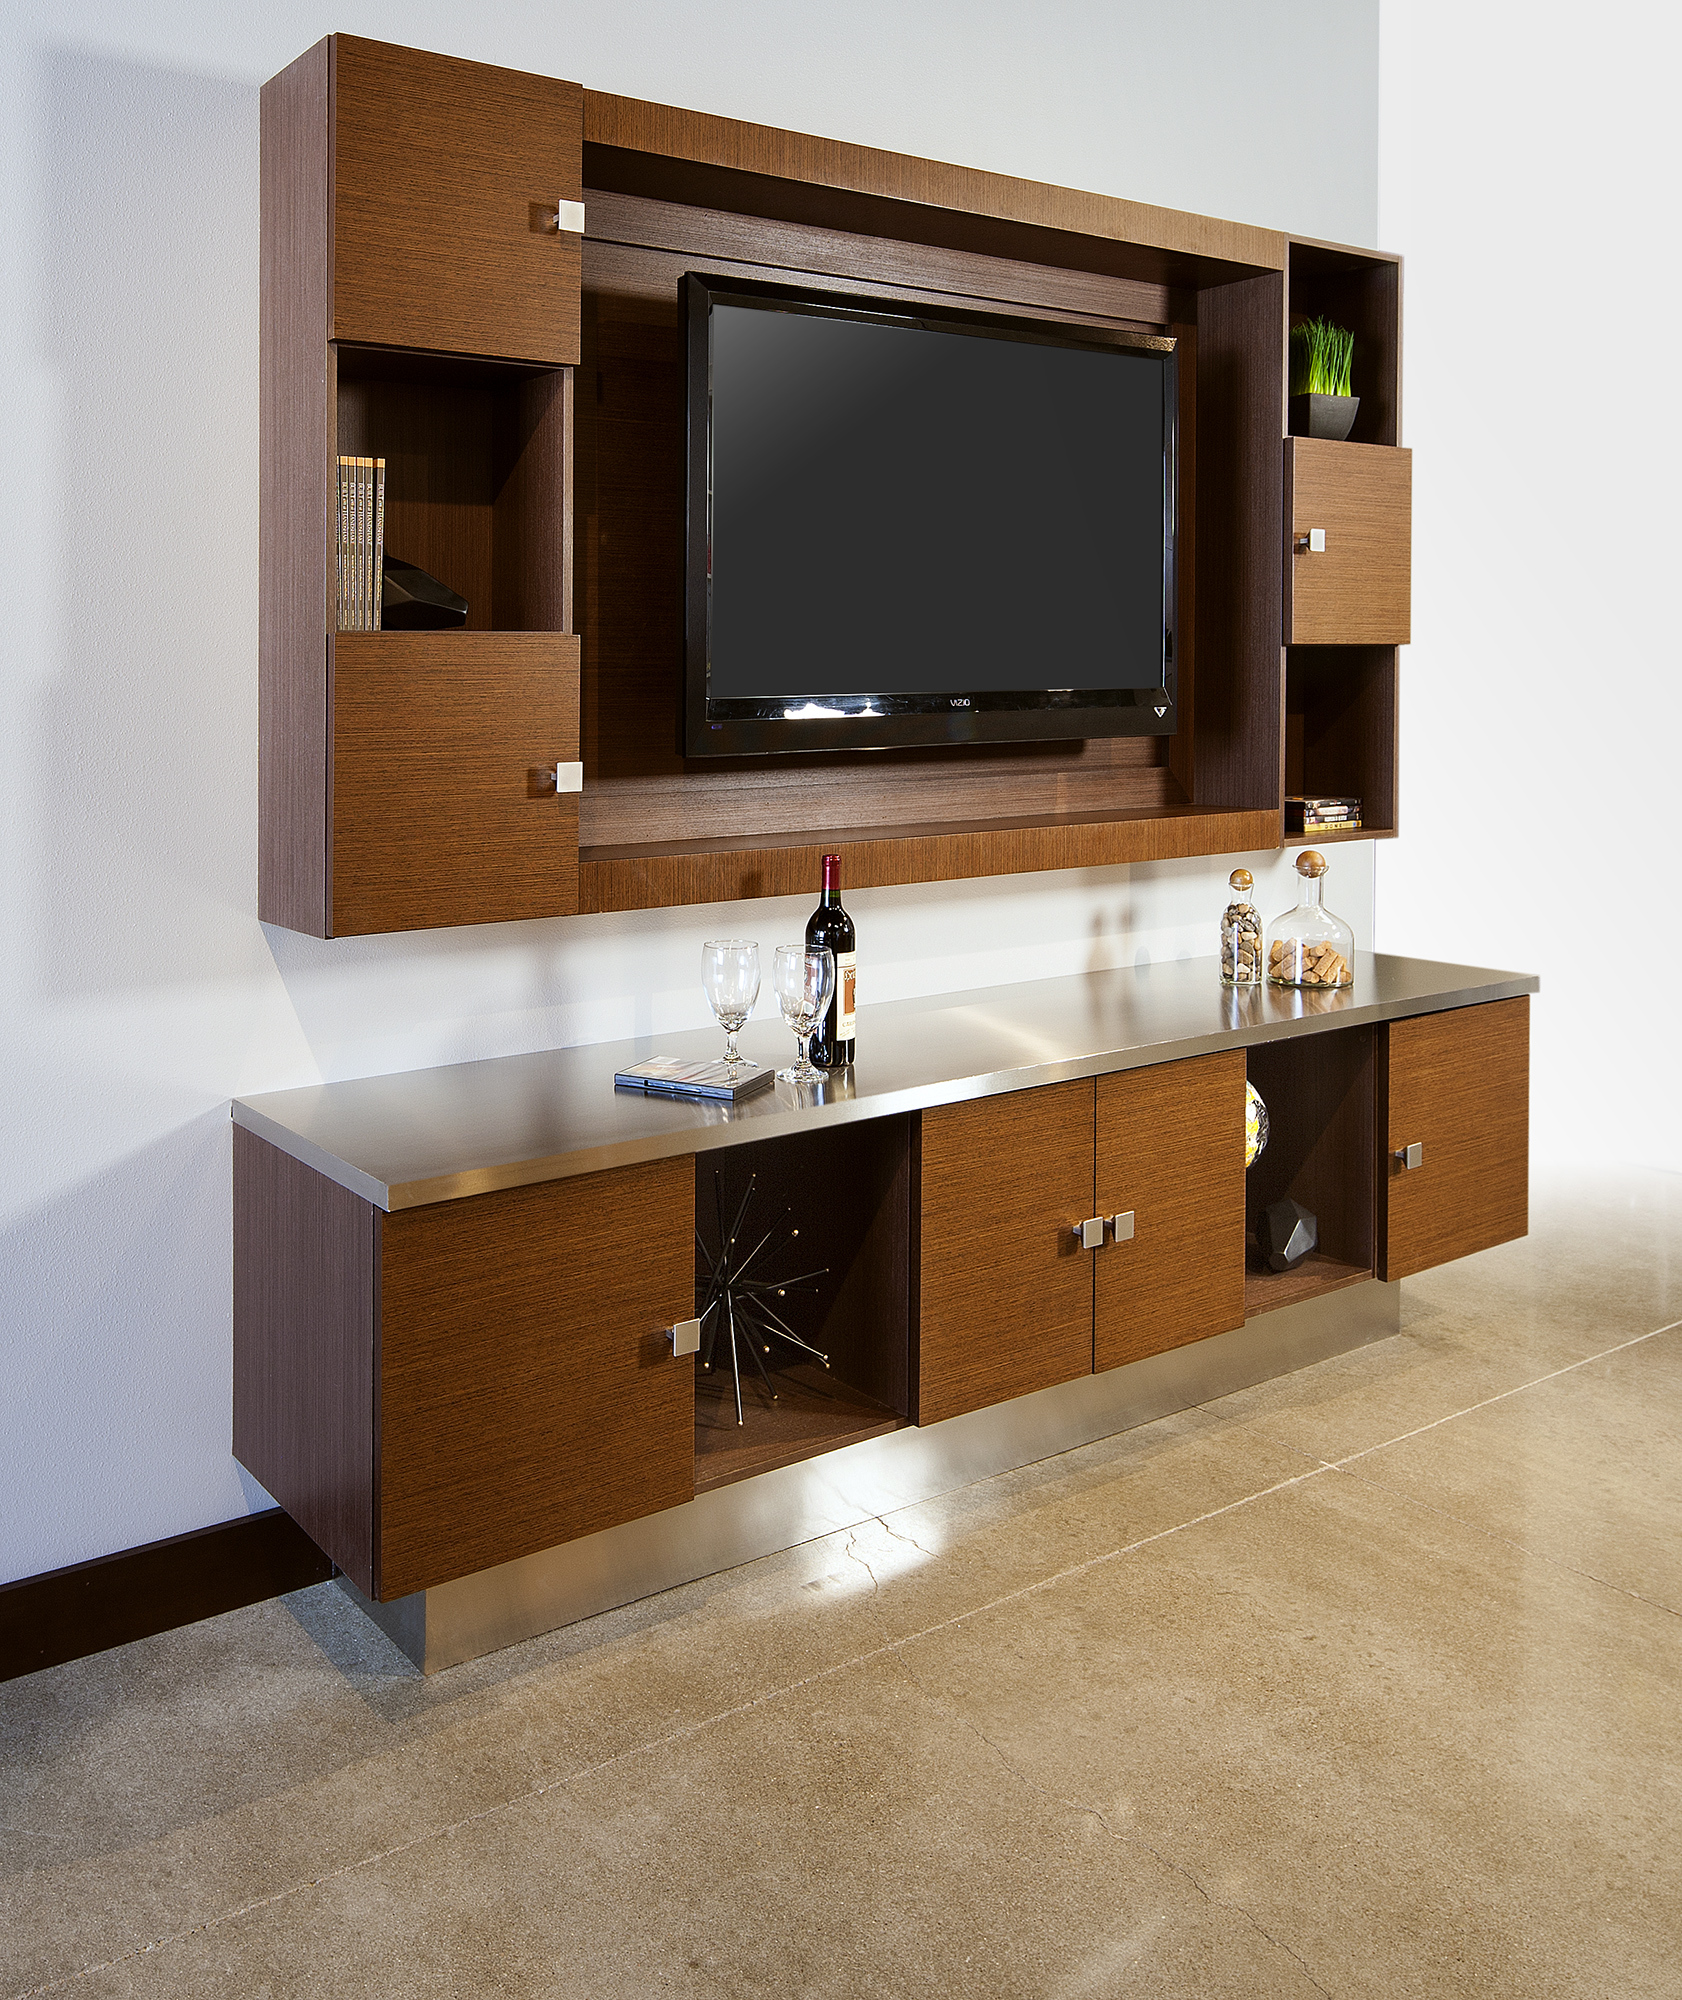 Stained entertainment cabinets in Wenge Natural by ShowplaceEVO - view 1